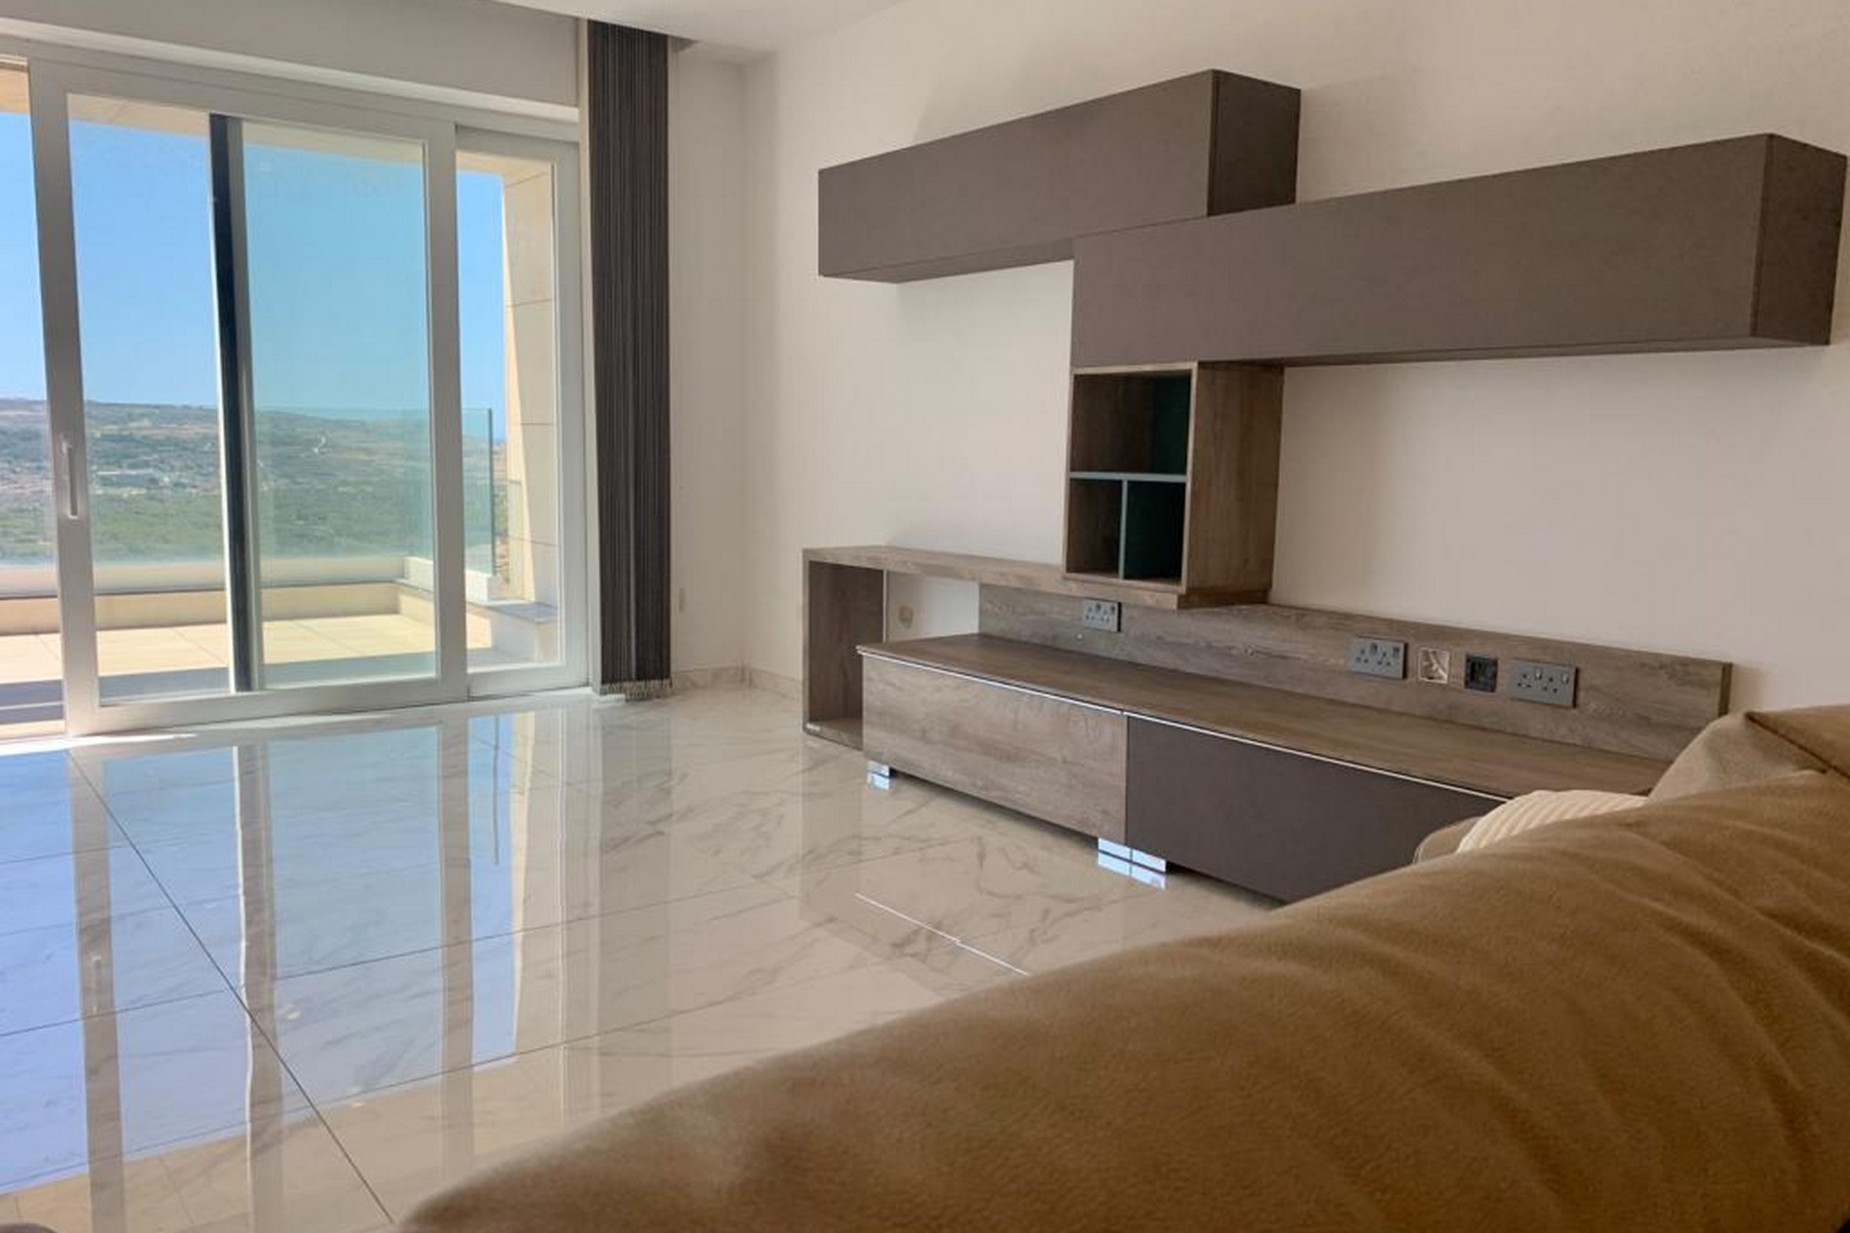 3 bed Apartment For Rent in Mellieha, Mellieha - thumb 3